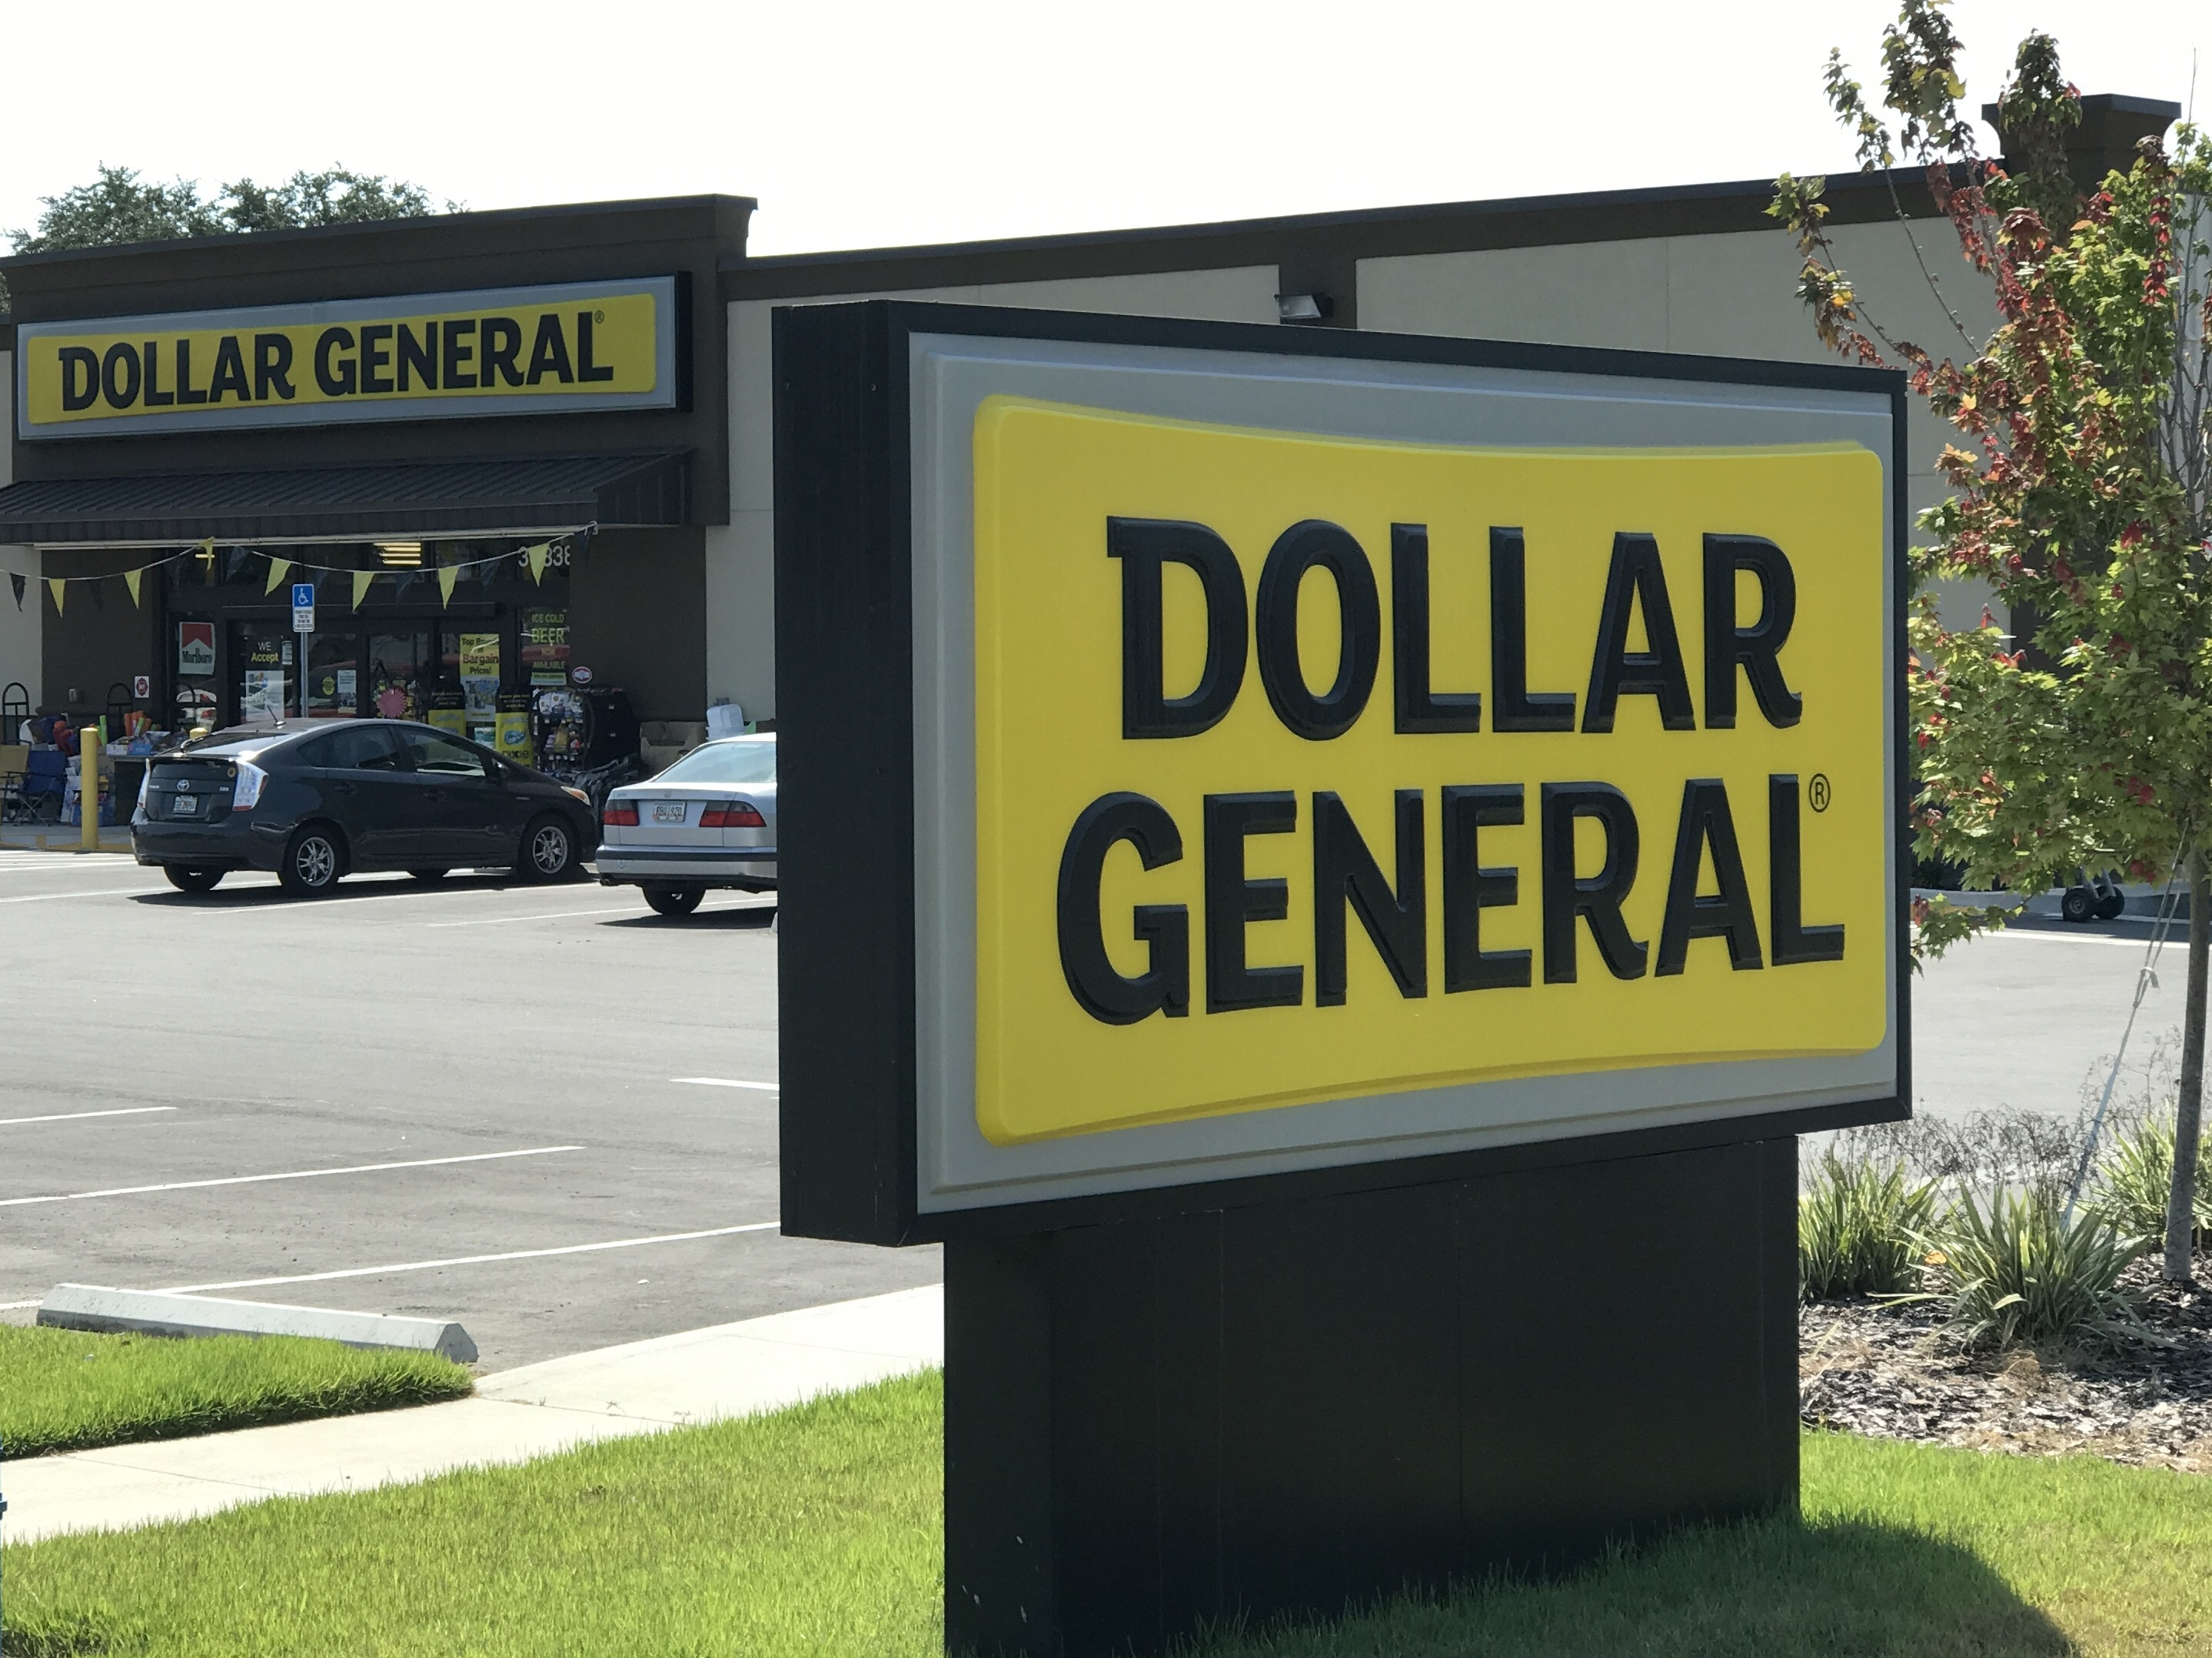 Dollar General Sees Gain, Loss From Weather in Q3